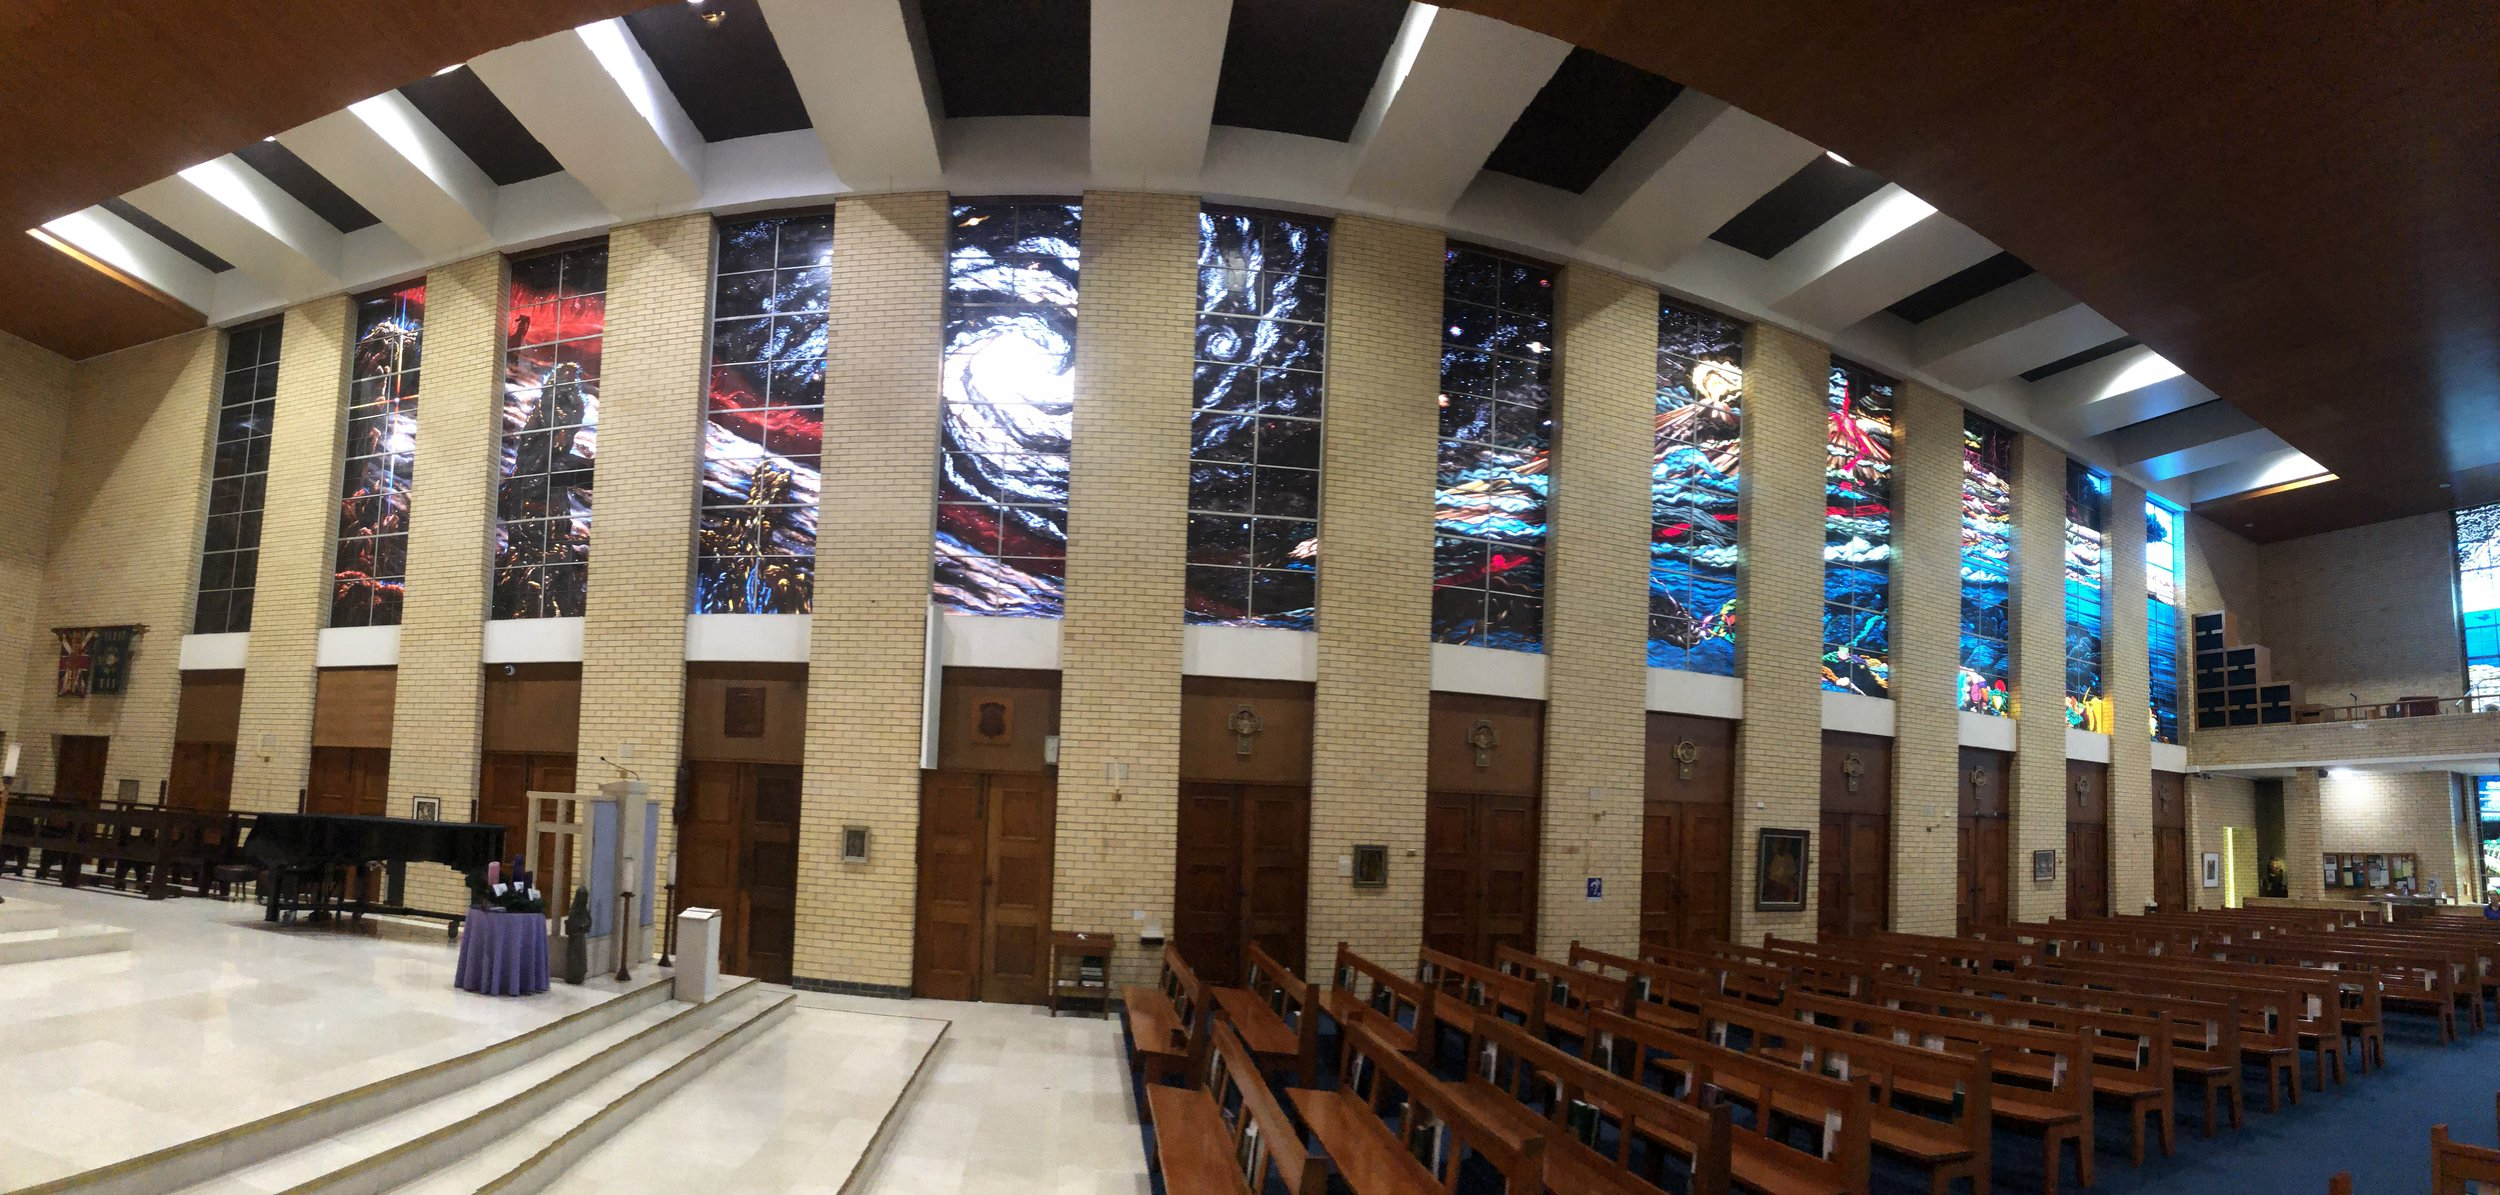 Views inside St. Monica Cathedral, first half of the creation story.